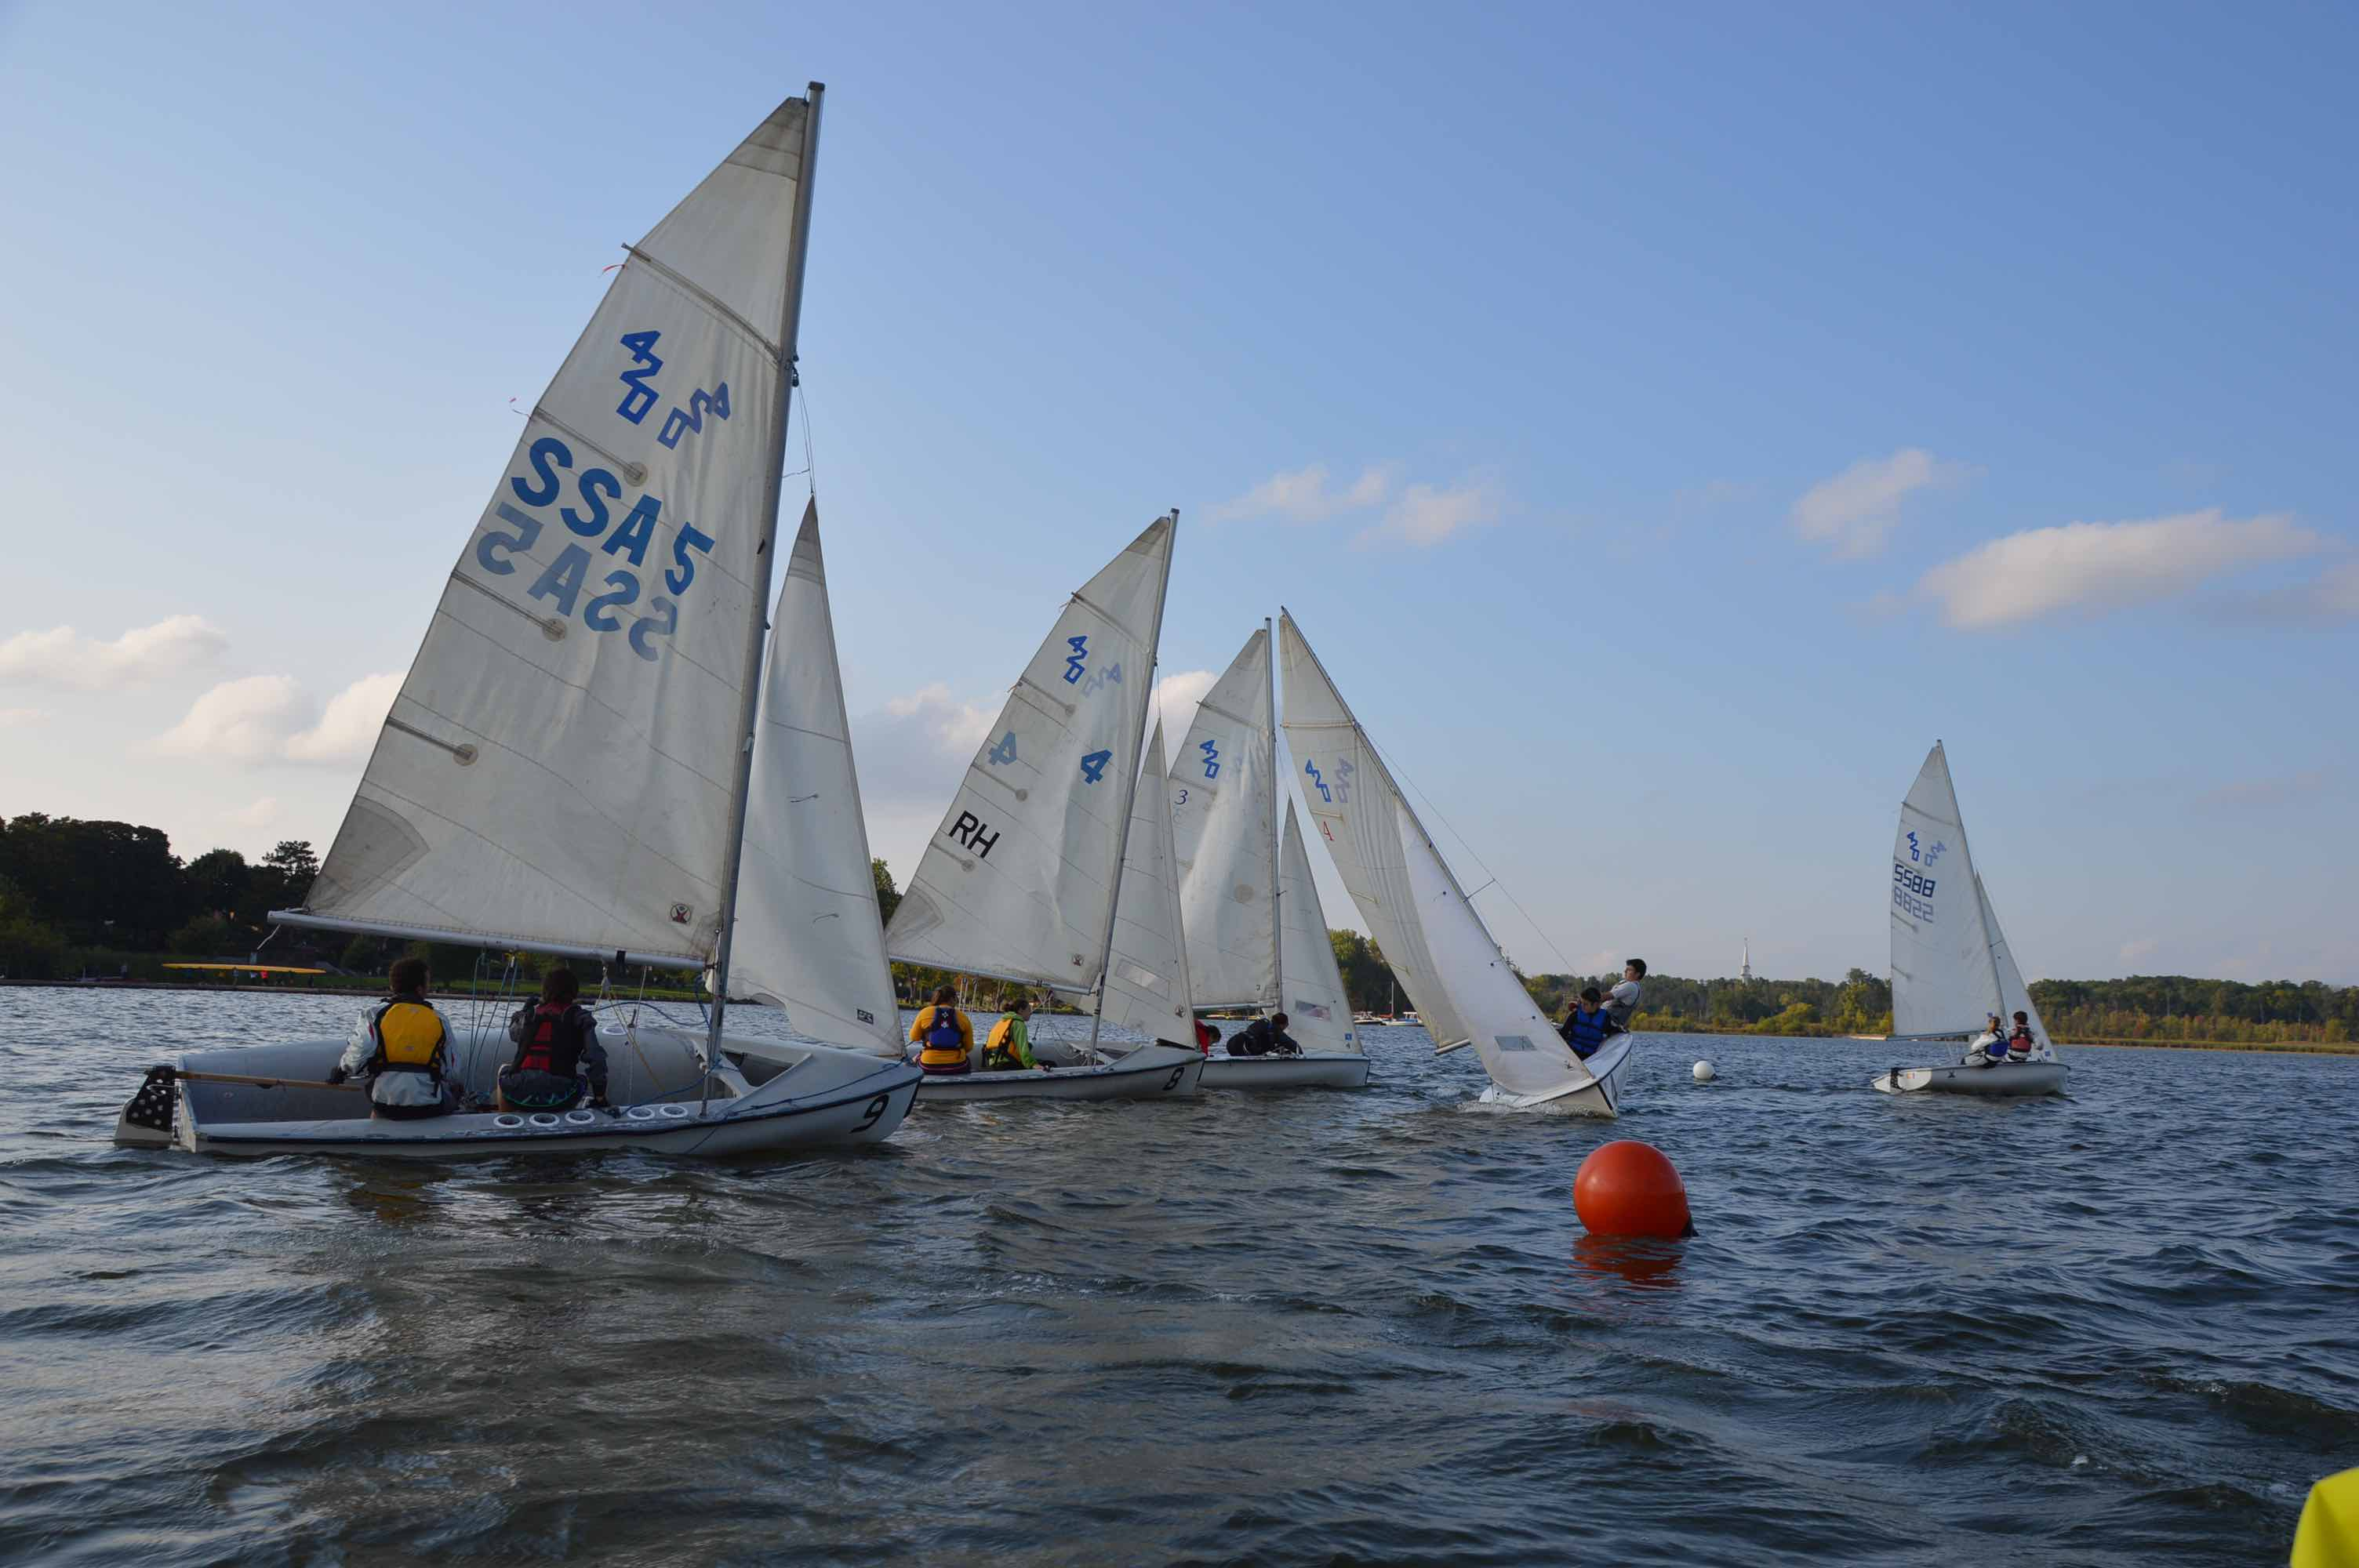 EGR Sail team competing in the fall 2014.